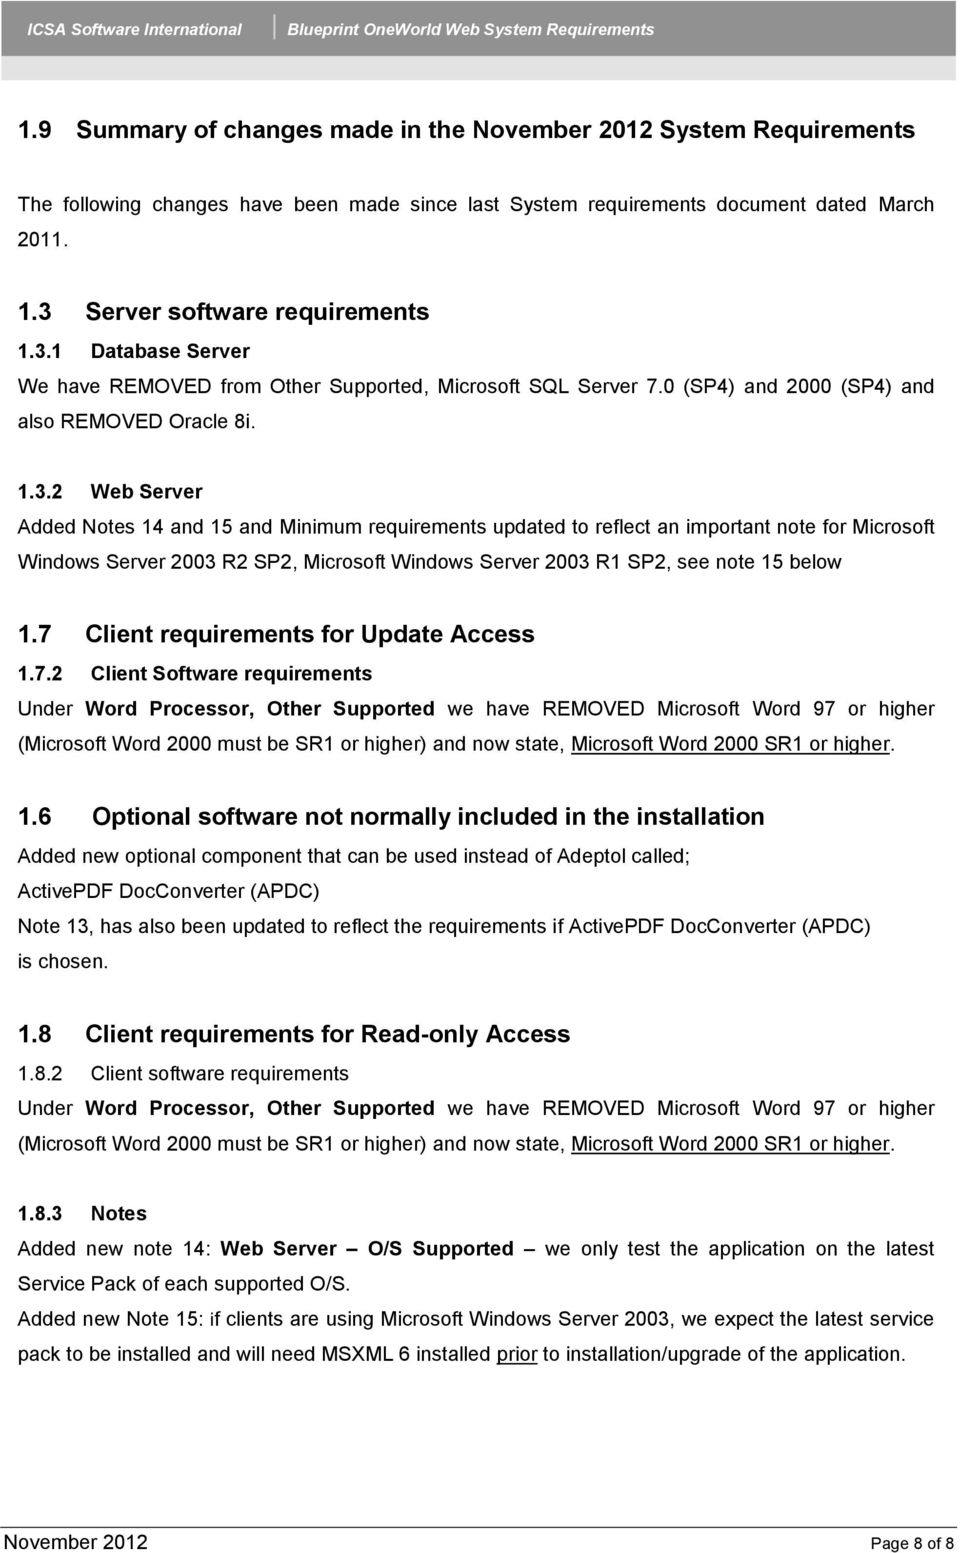 7 Client requirements for Update Access 1.7.2 Client Software requirements Under Word Processor, Other Supported we have REMOVED Microsoft Word 97 or higher (Microsoft Word 2000 must be SR1 or